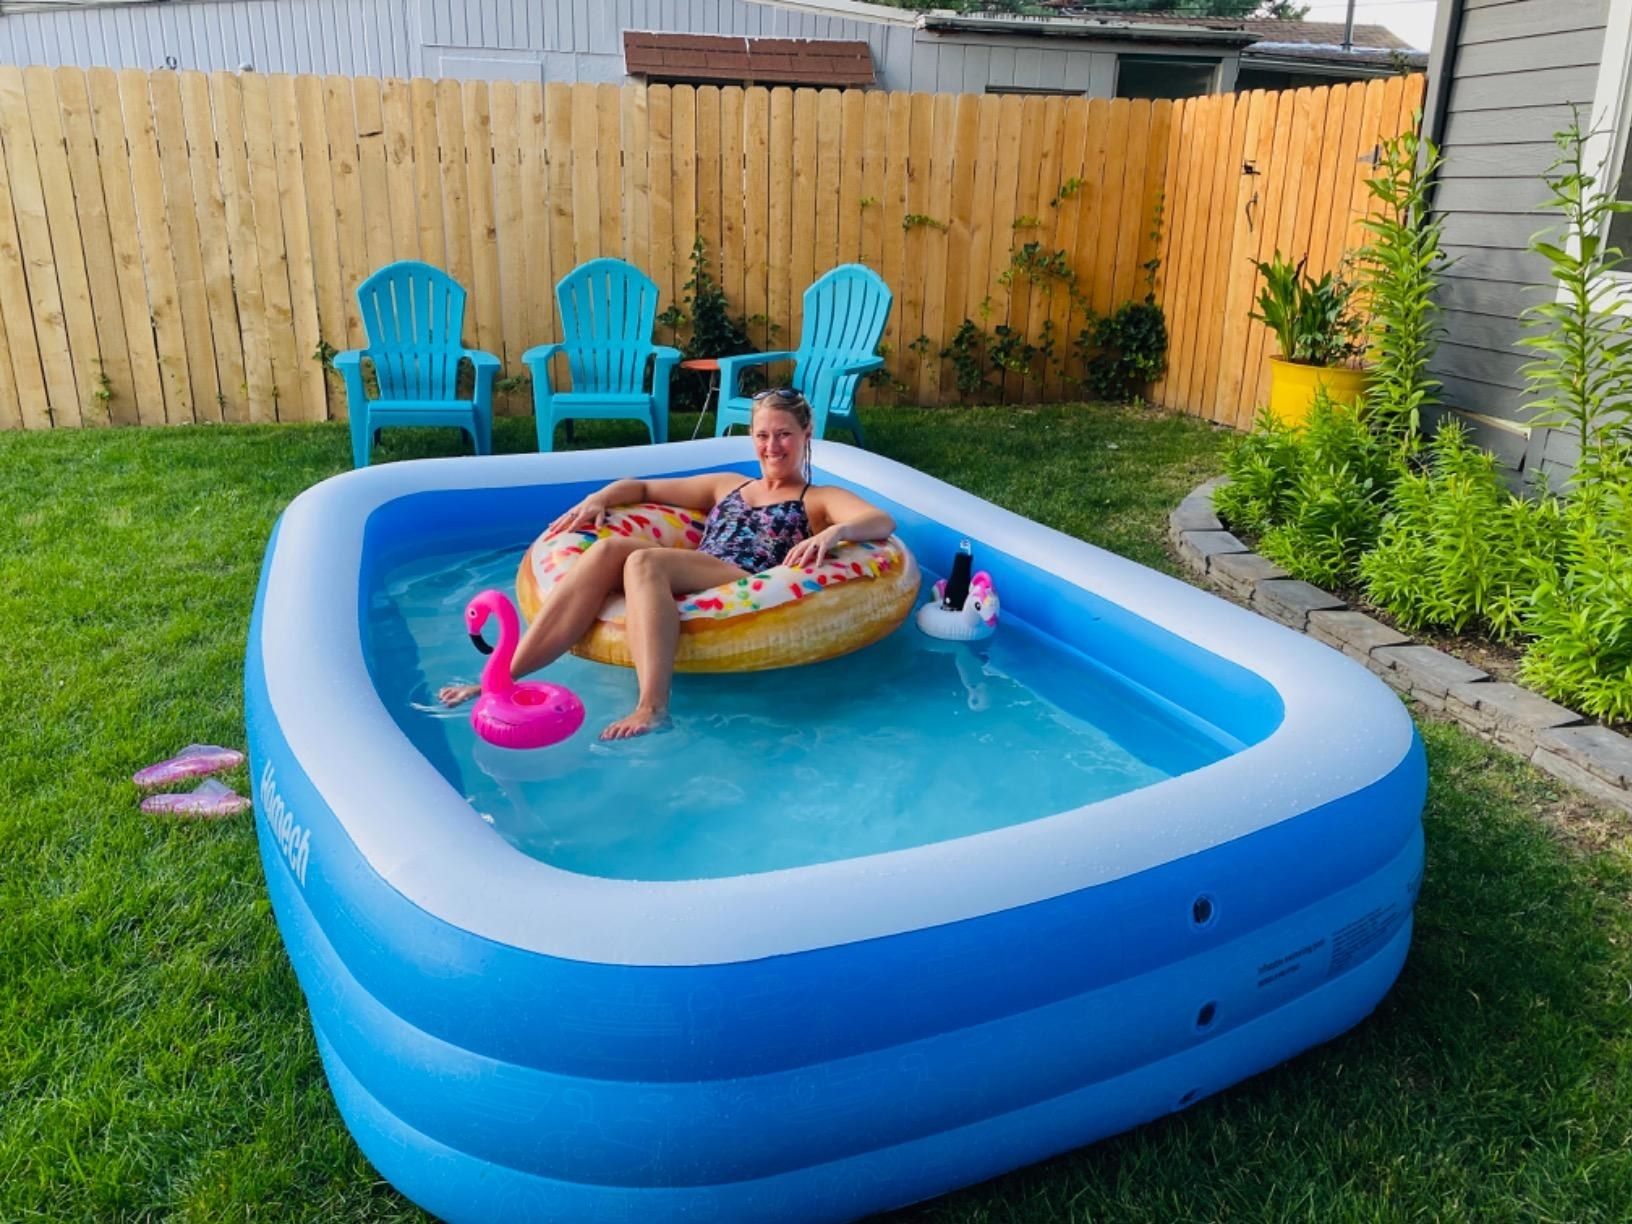 image of reviewer floating on a donut floaty in a full homech inflatable pool